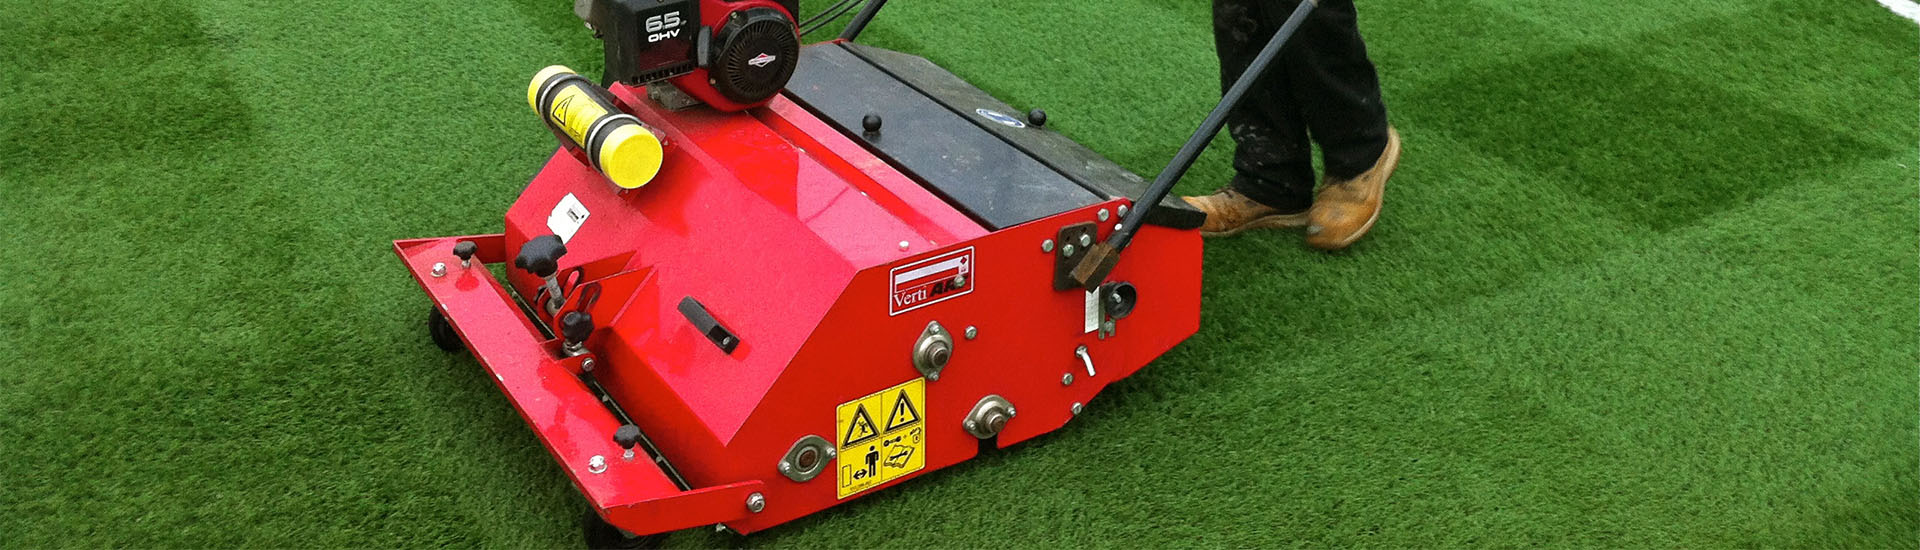 Artificial Turf Sports Field Maintenance and Repair Vehicles, Sand and Granule Pouring Machine